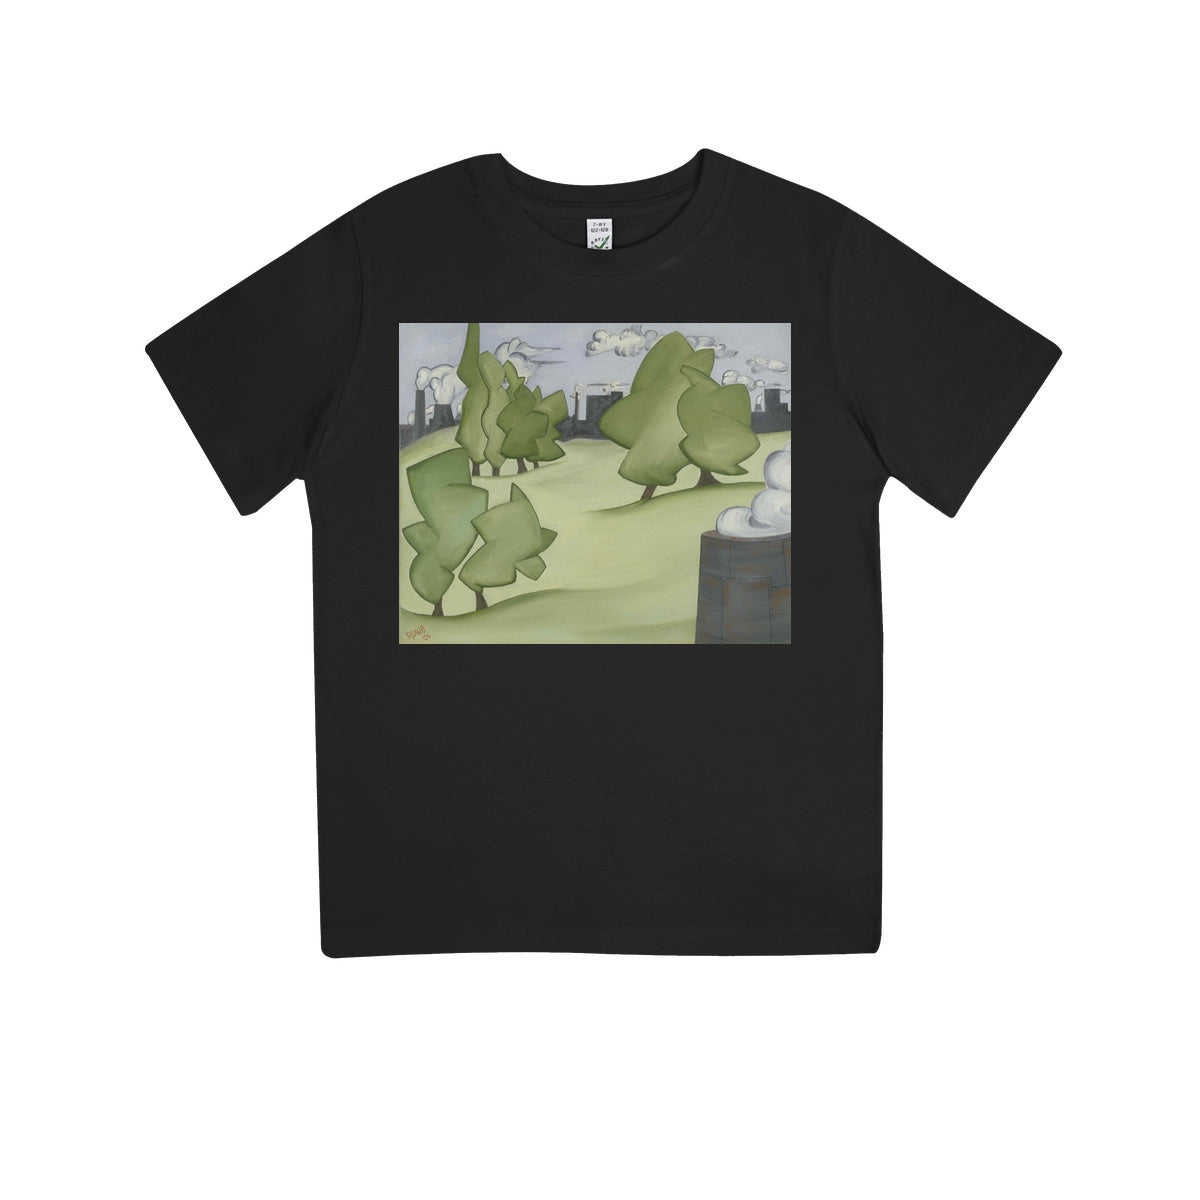 The Park Kids 100% Organic T-Shirt